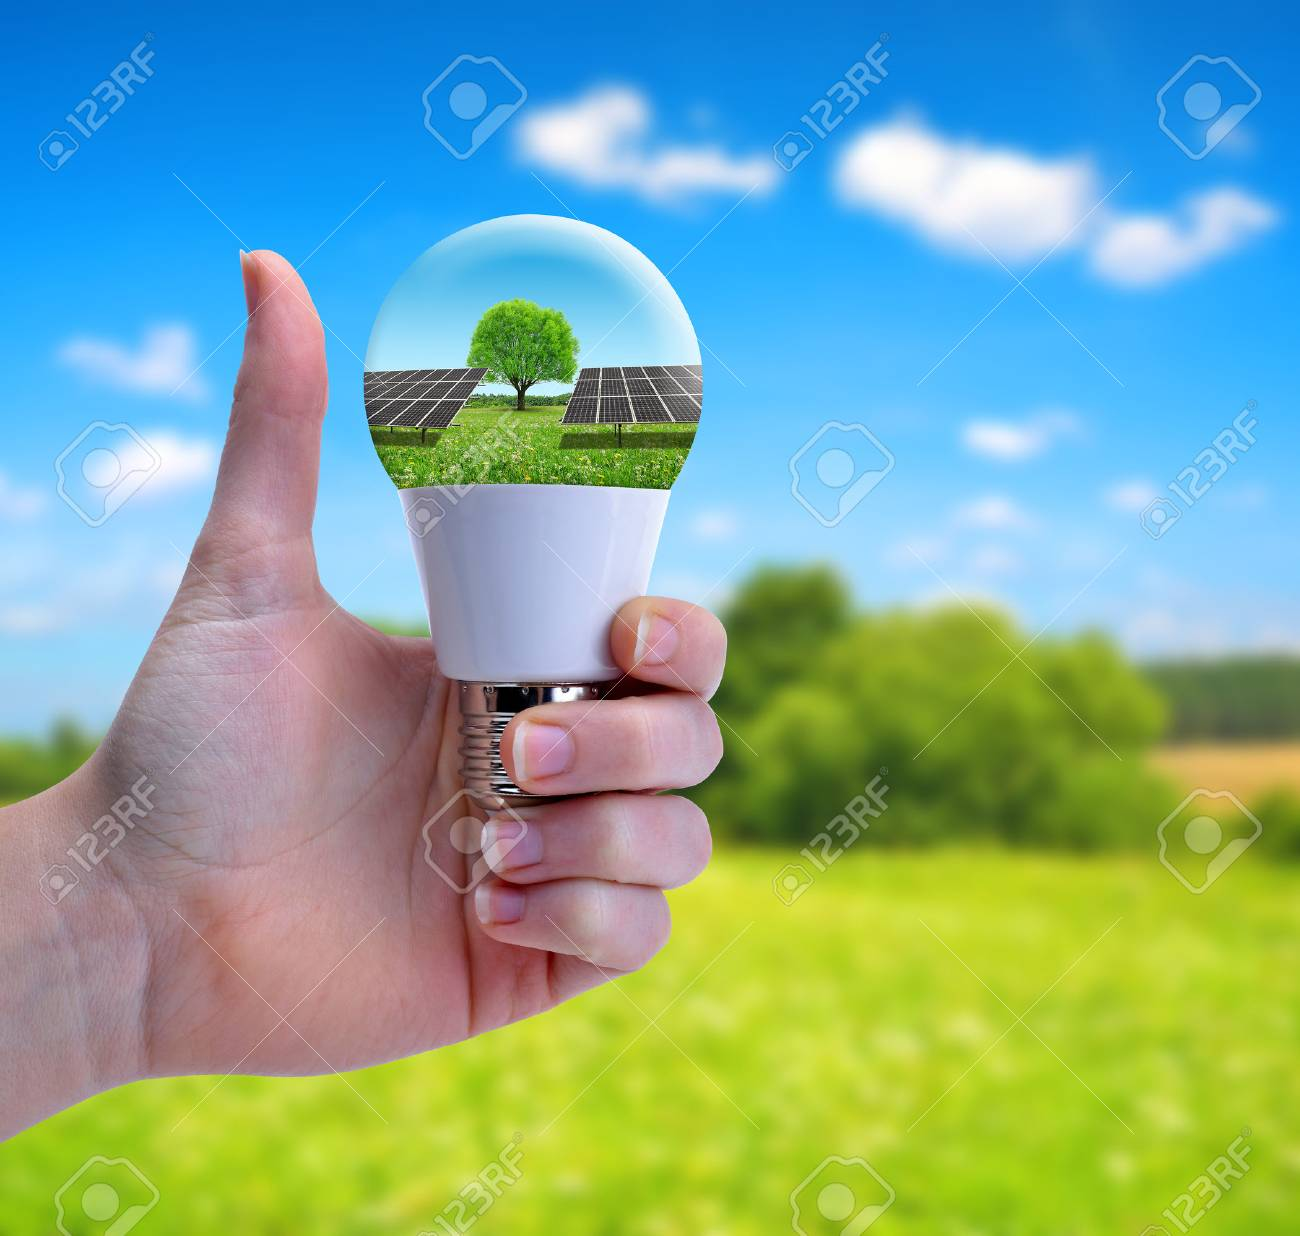 Hand with thumb up holding a eco LED bulb with solar panel. The concept of sustainable resources. - 71691480